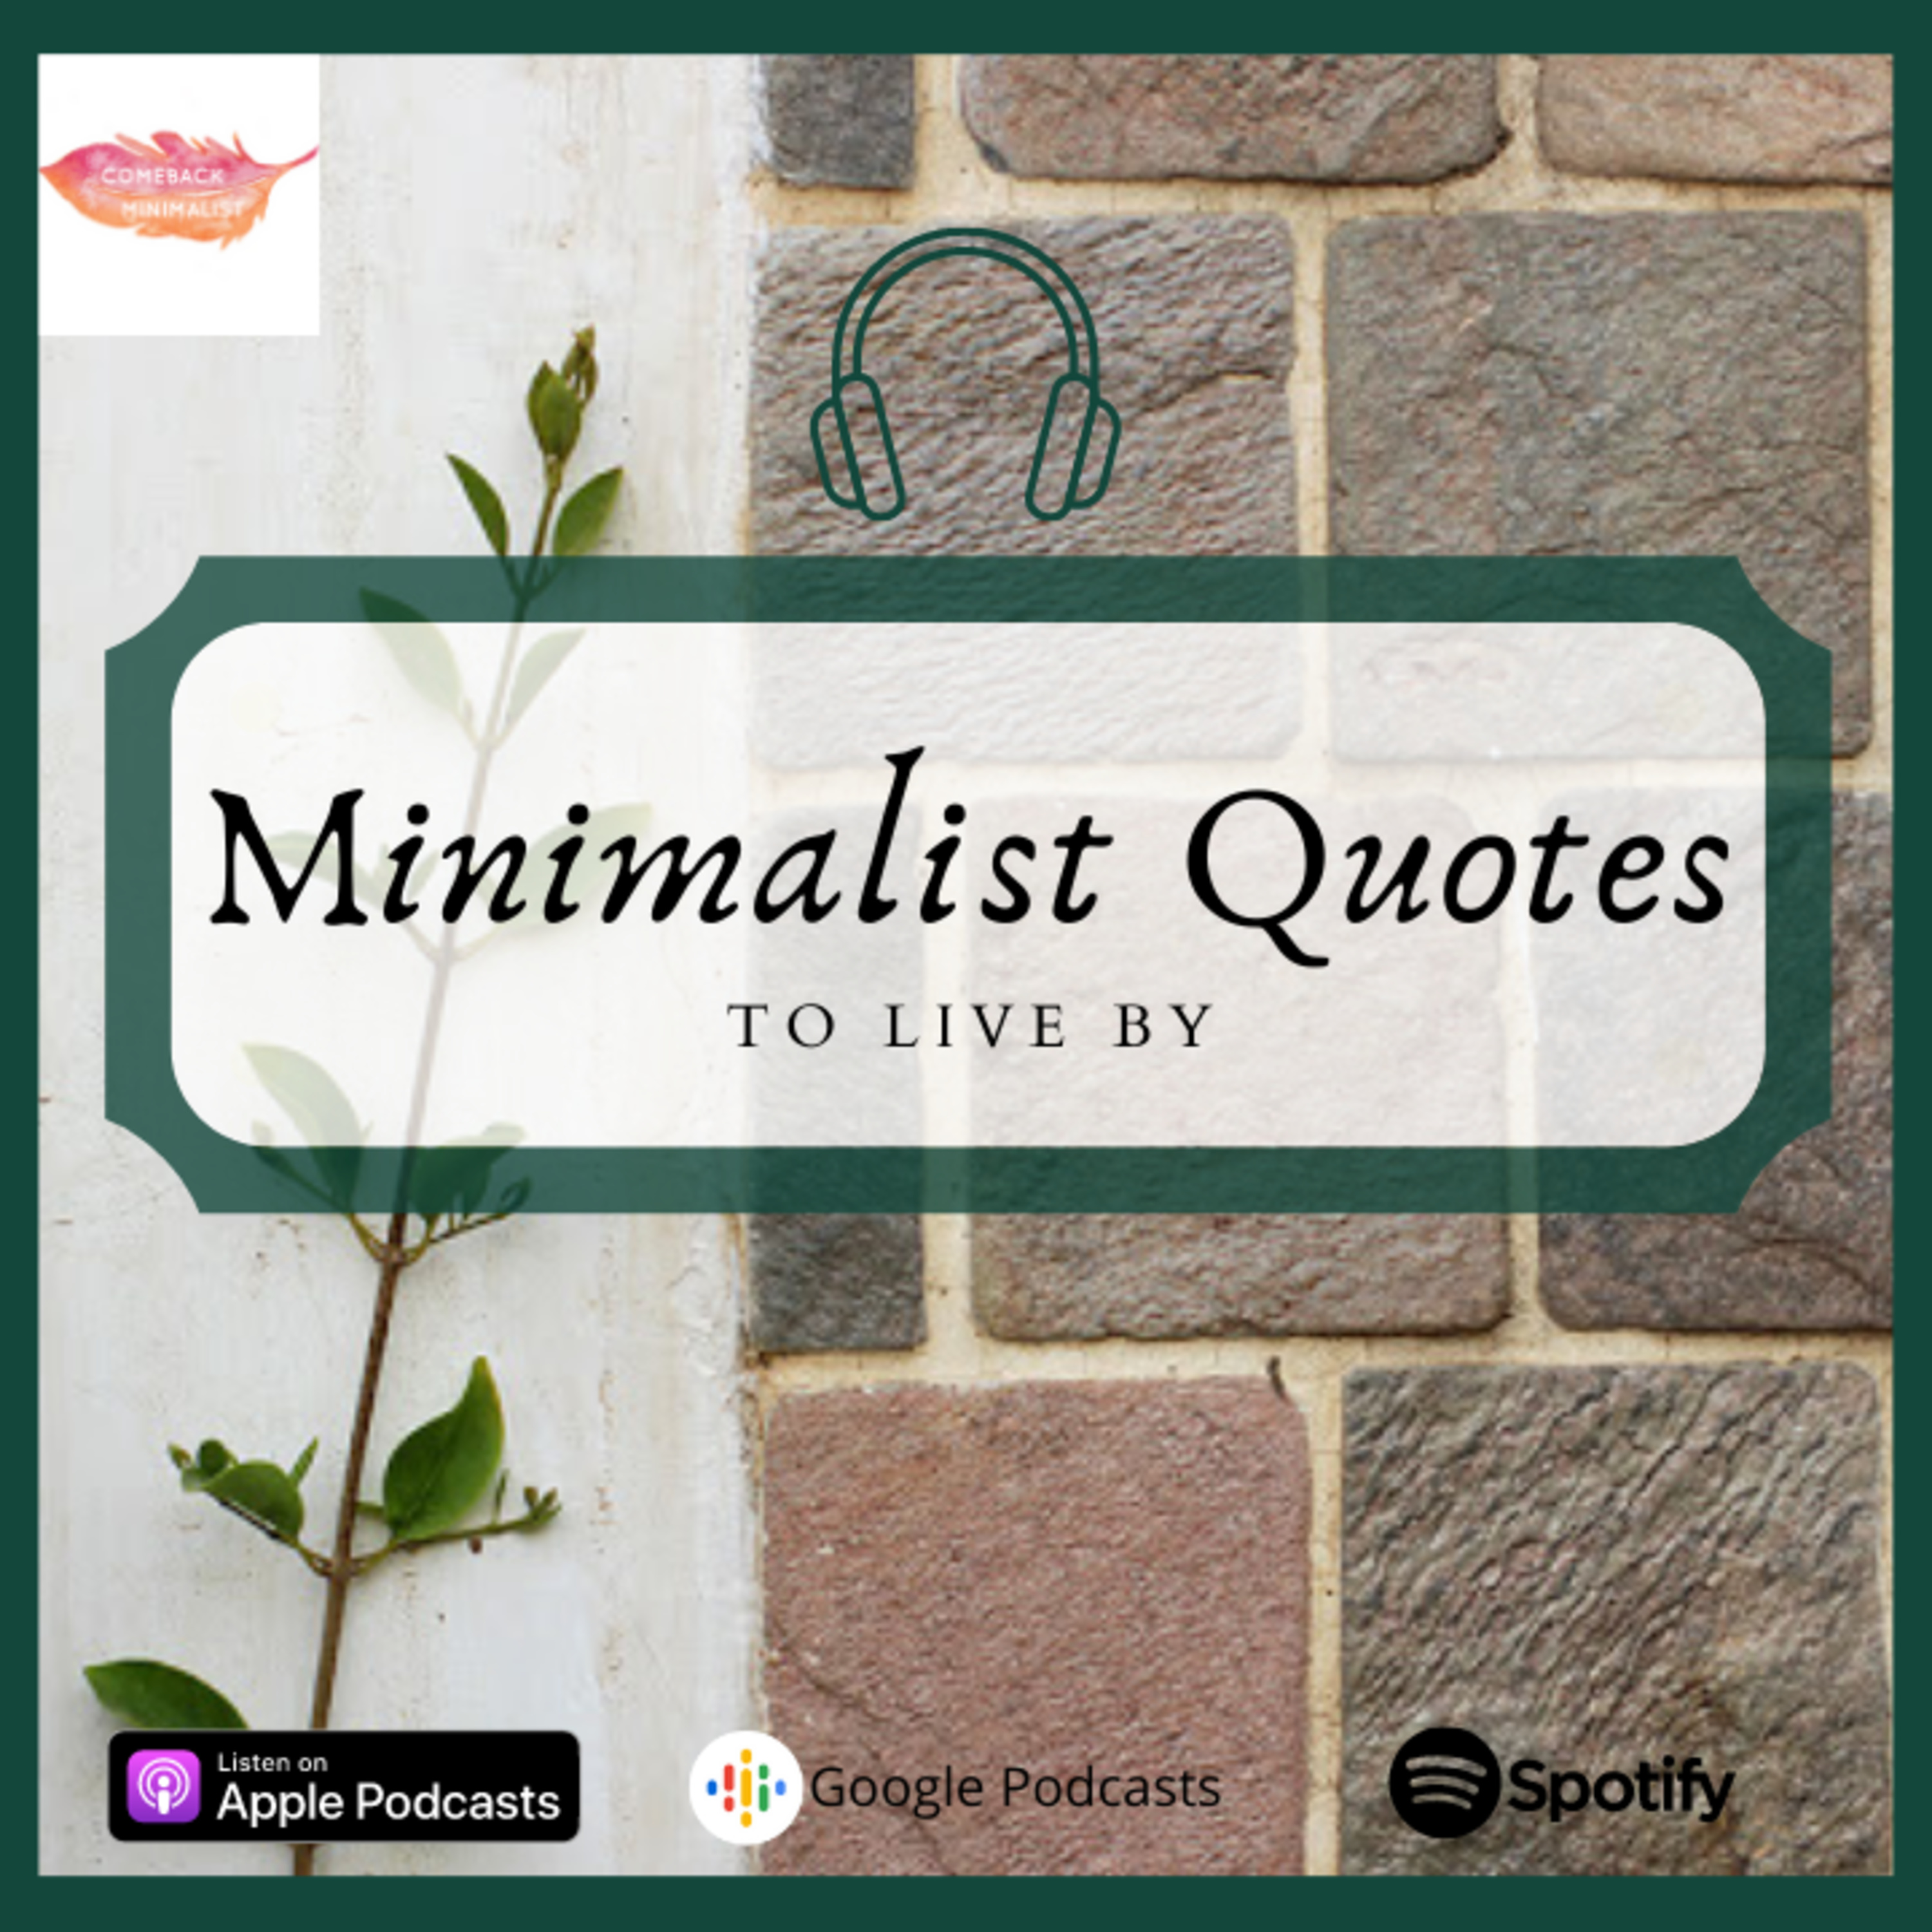 Minimalist Quotes to live by